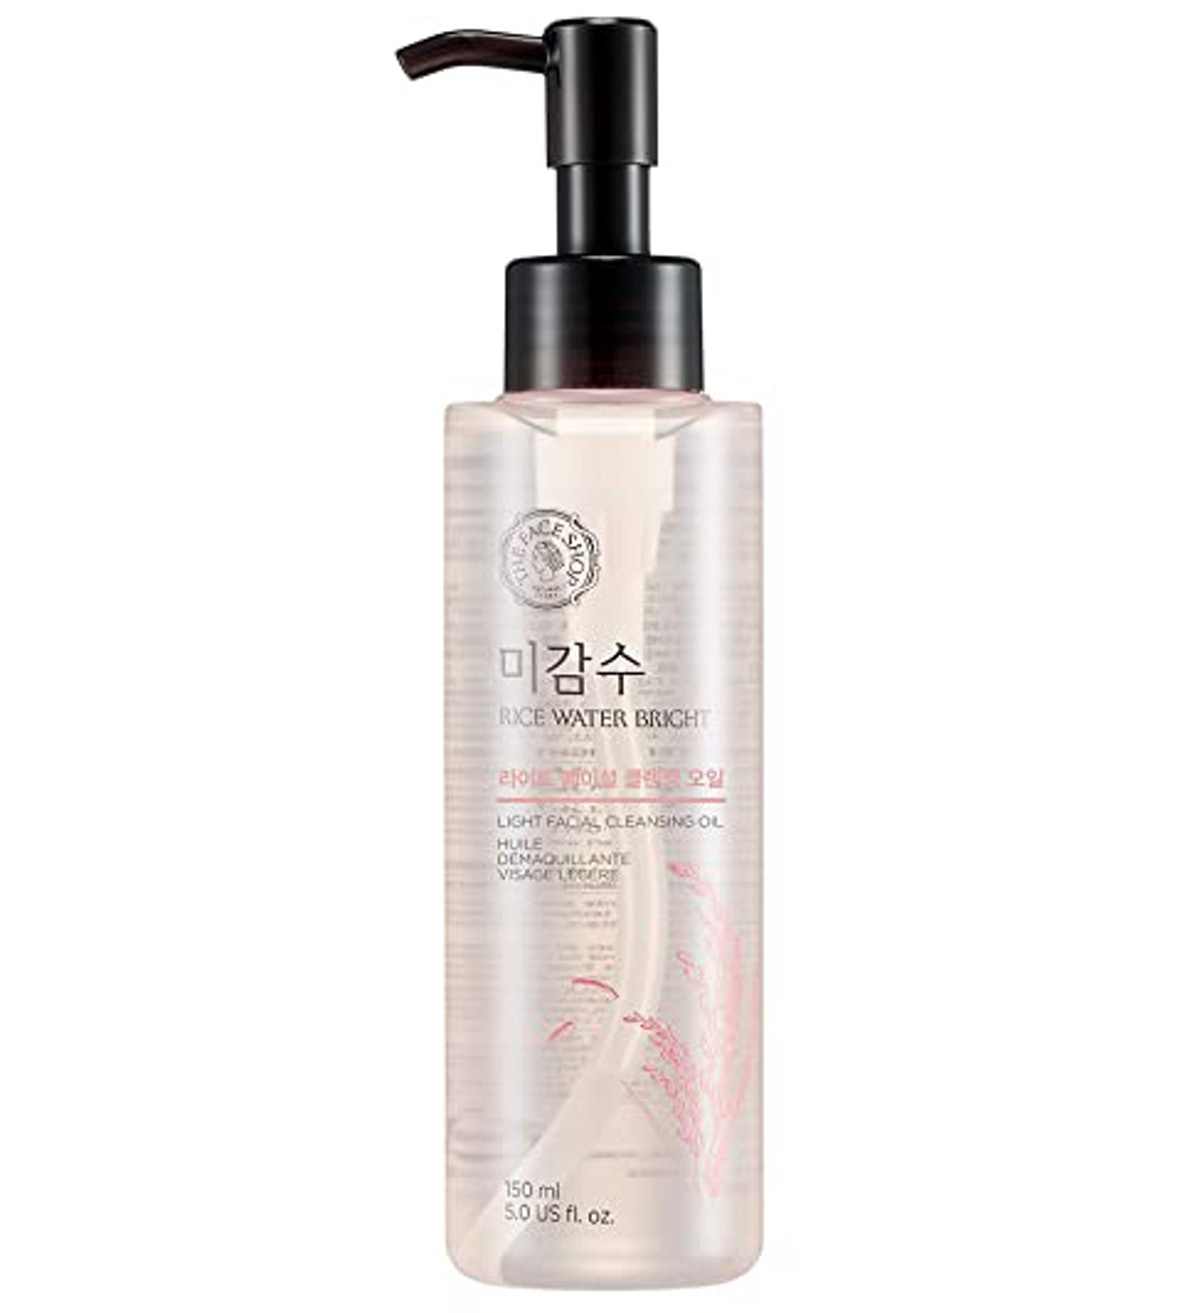 The Face Shop Rice Water Bright Light Facial Cleansing Oil